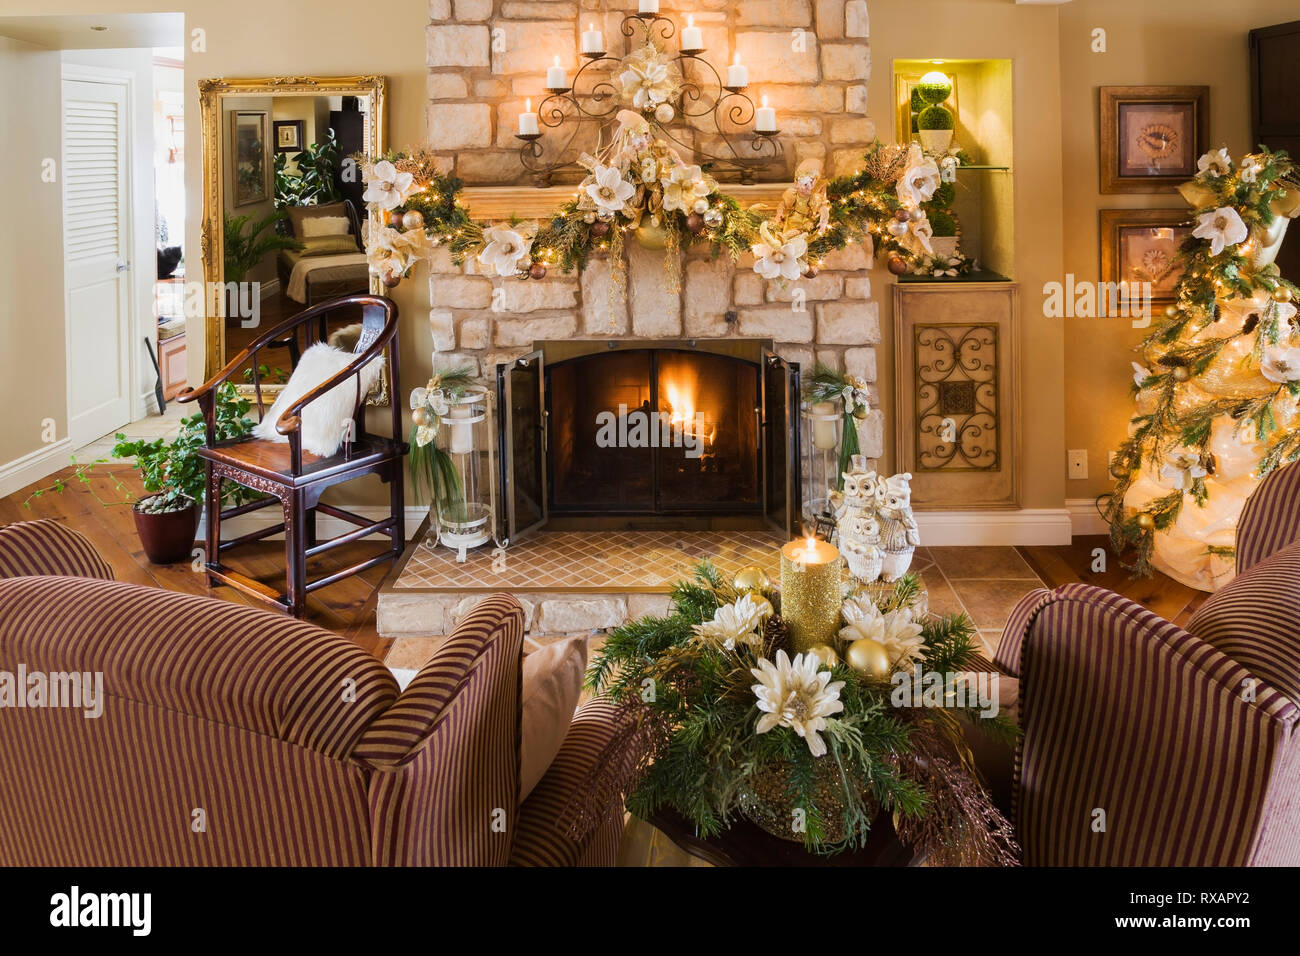 Two upholstered sitting chairs in front of natural cut-stone wood burning fireplace with Christmas decorations in the living room inside an old renova - Stock Image